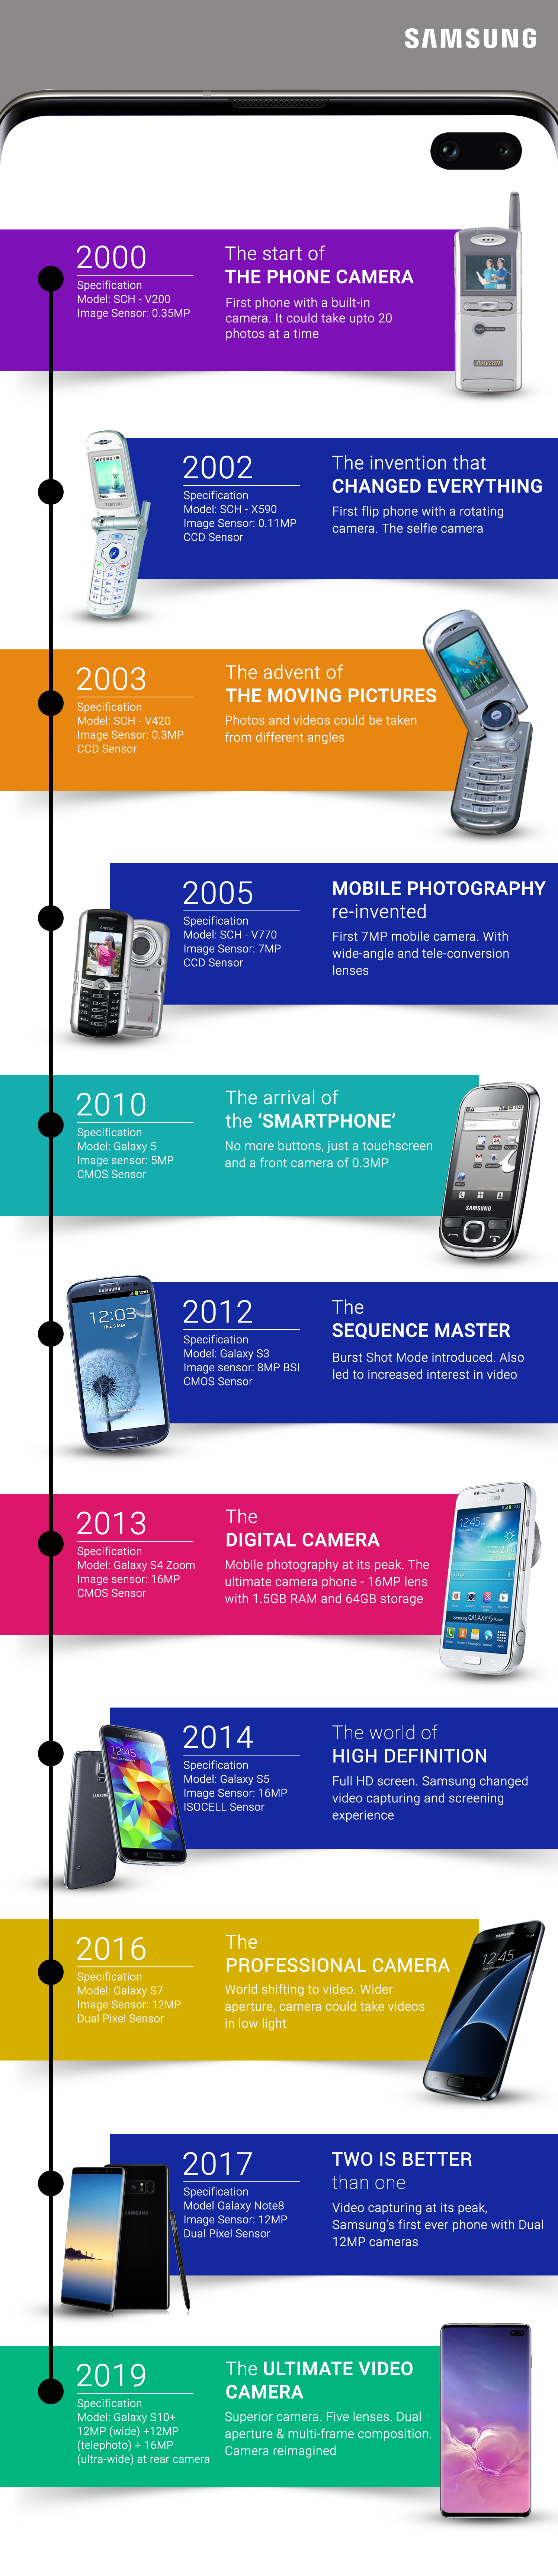 Samsung smartphone camera evolution